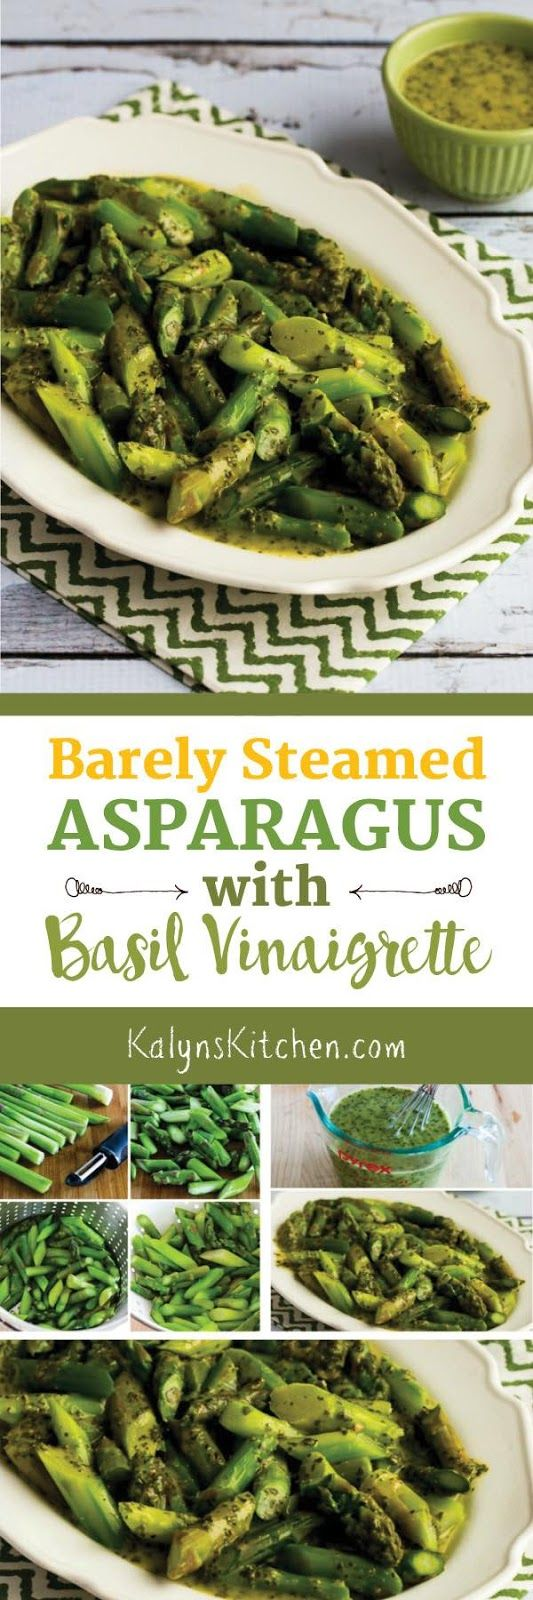 Barely Steamed Asparagus Recipe with Basil Vinaigrette; this is AMAZING and easy to make, and the recipe is low-carb, Keto, gluten-free, vegan, Paleo, and Whole 30. [found on KalynsKitchen.com]